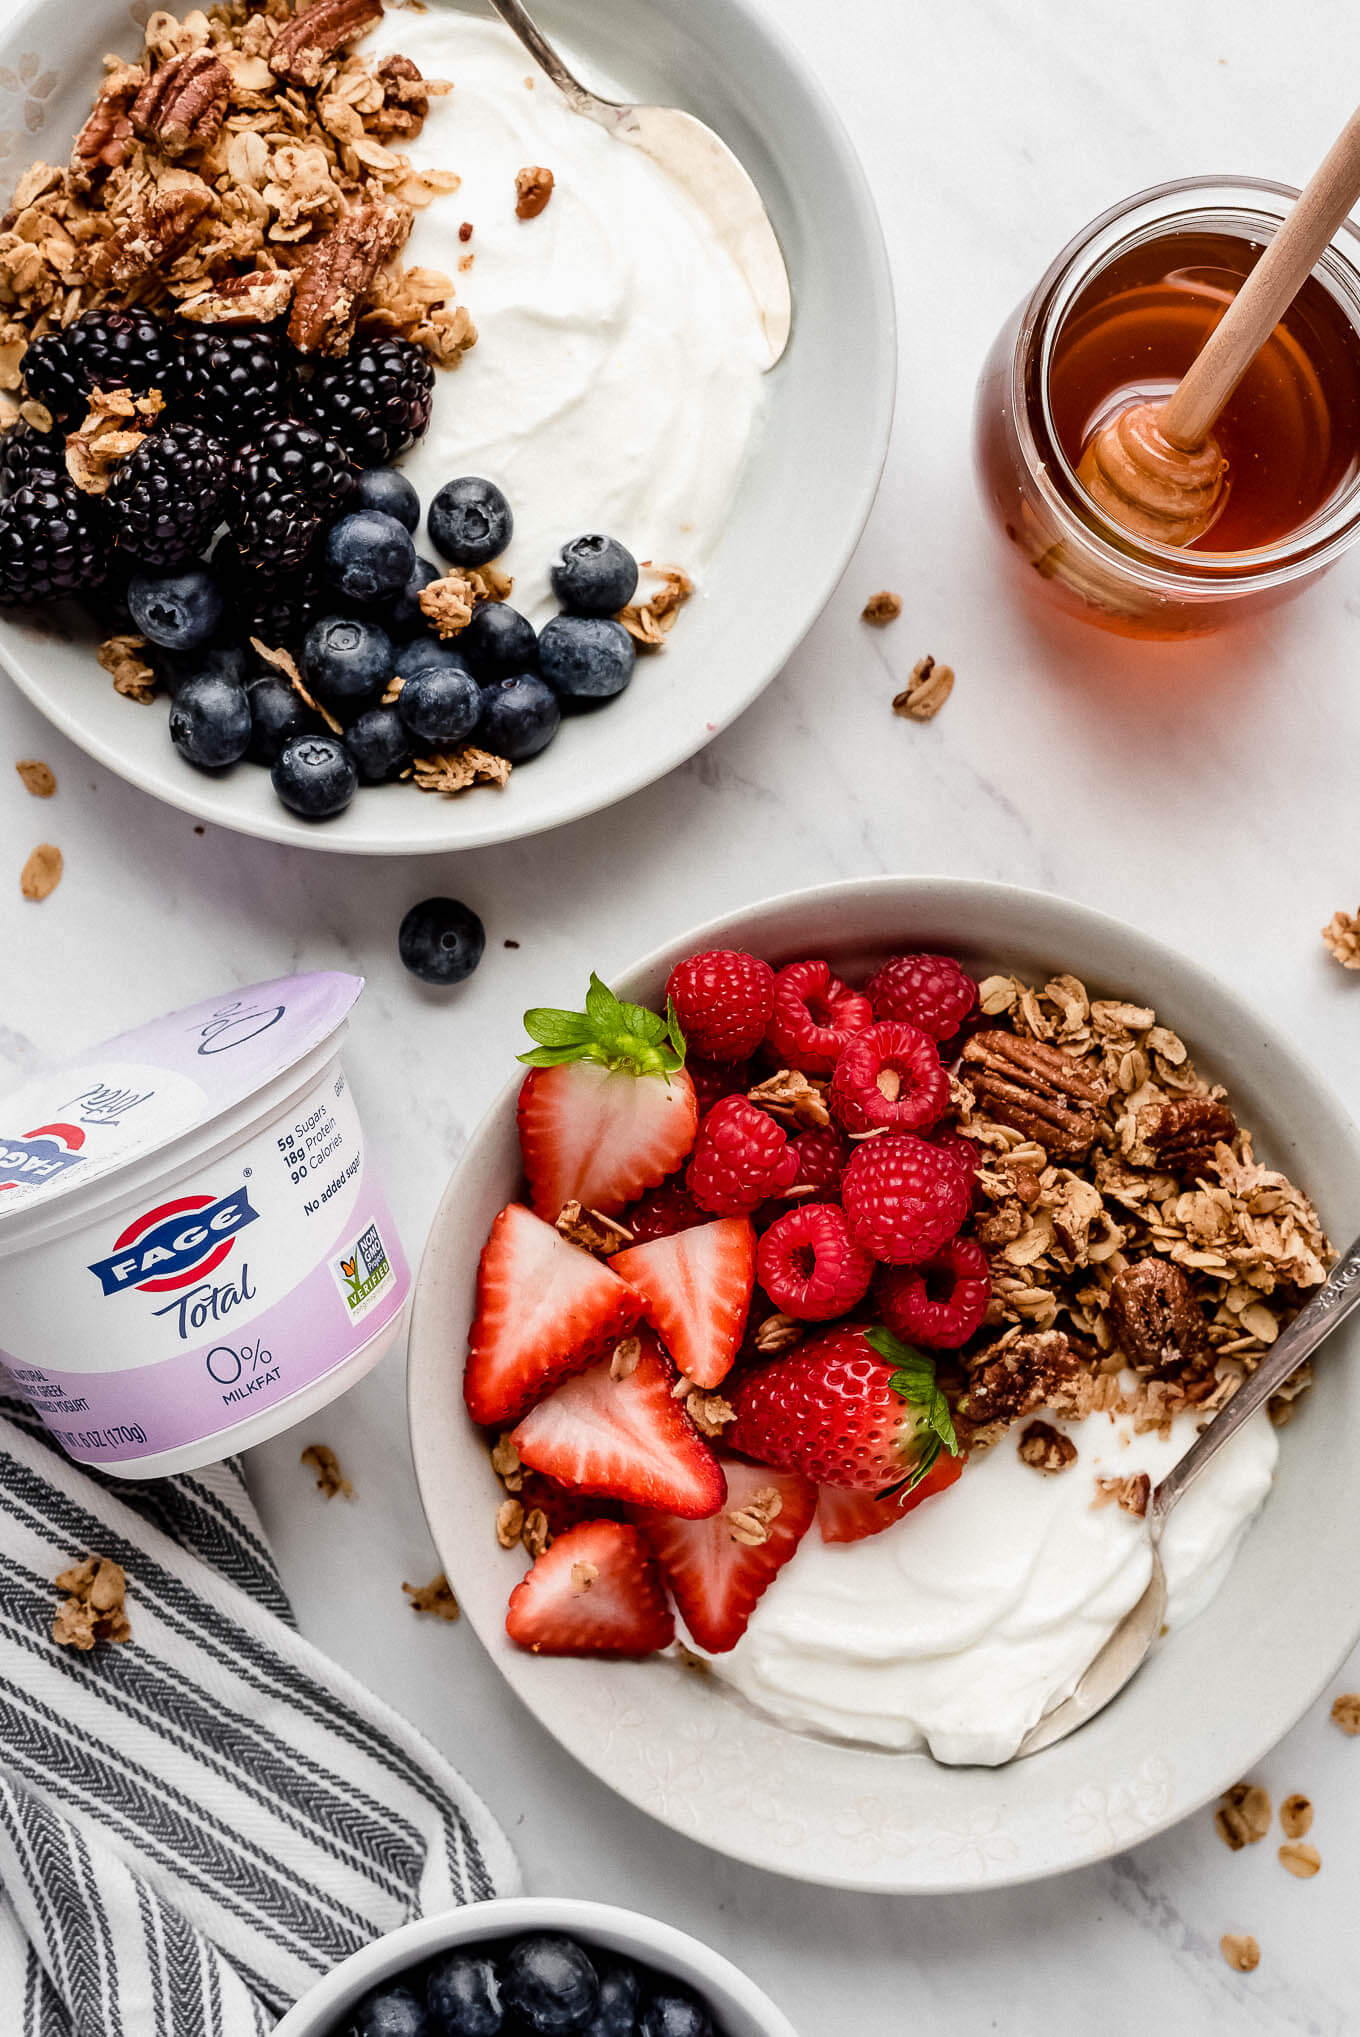 A yogurt bowl with black and blueberries and granola and a yogurt bowl with strawberries, raspberries, and granola.